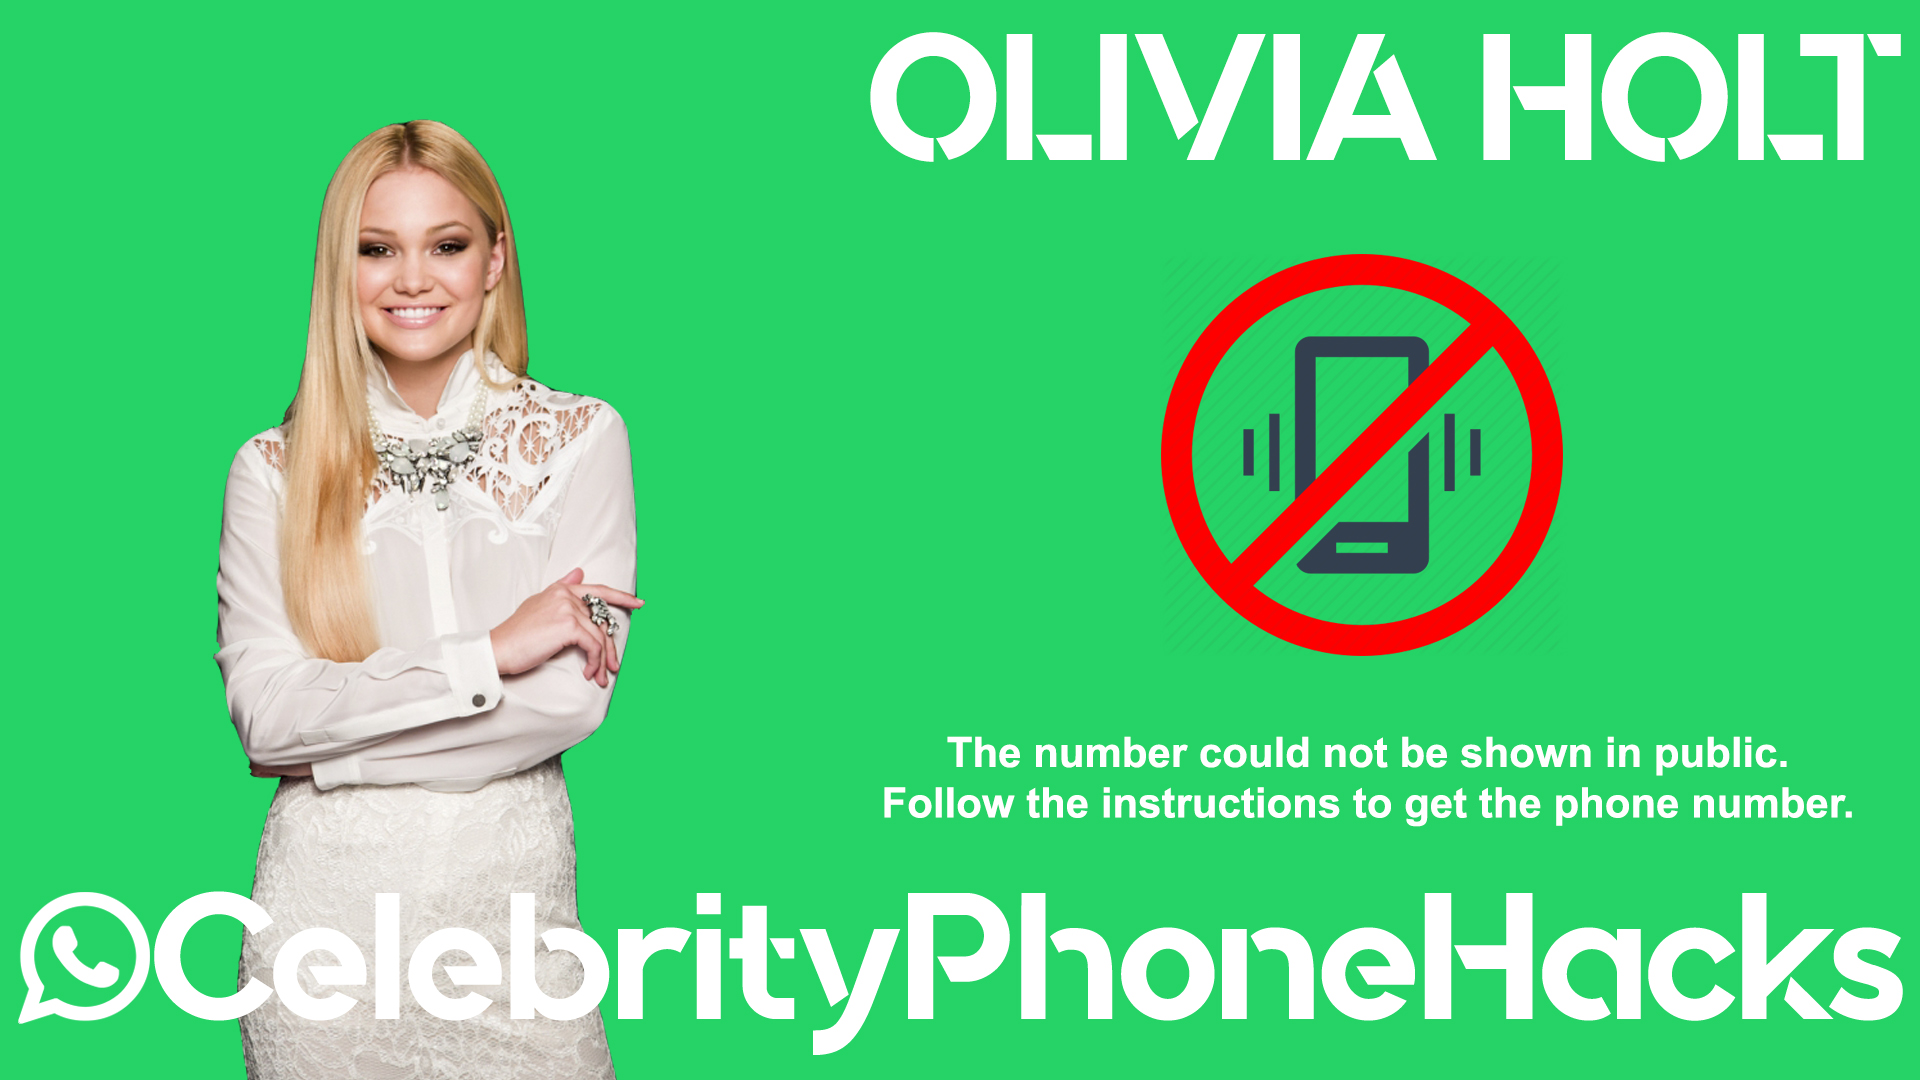 Olivia Holt real phone number 2019 whatsapp hacked leaked